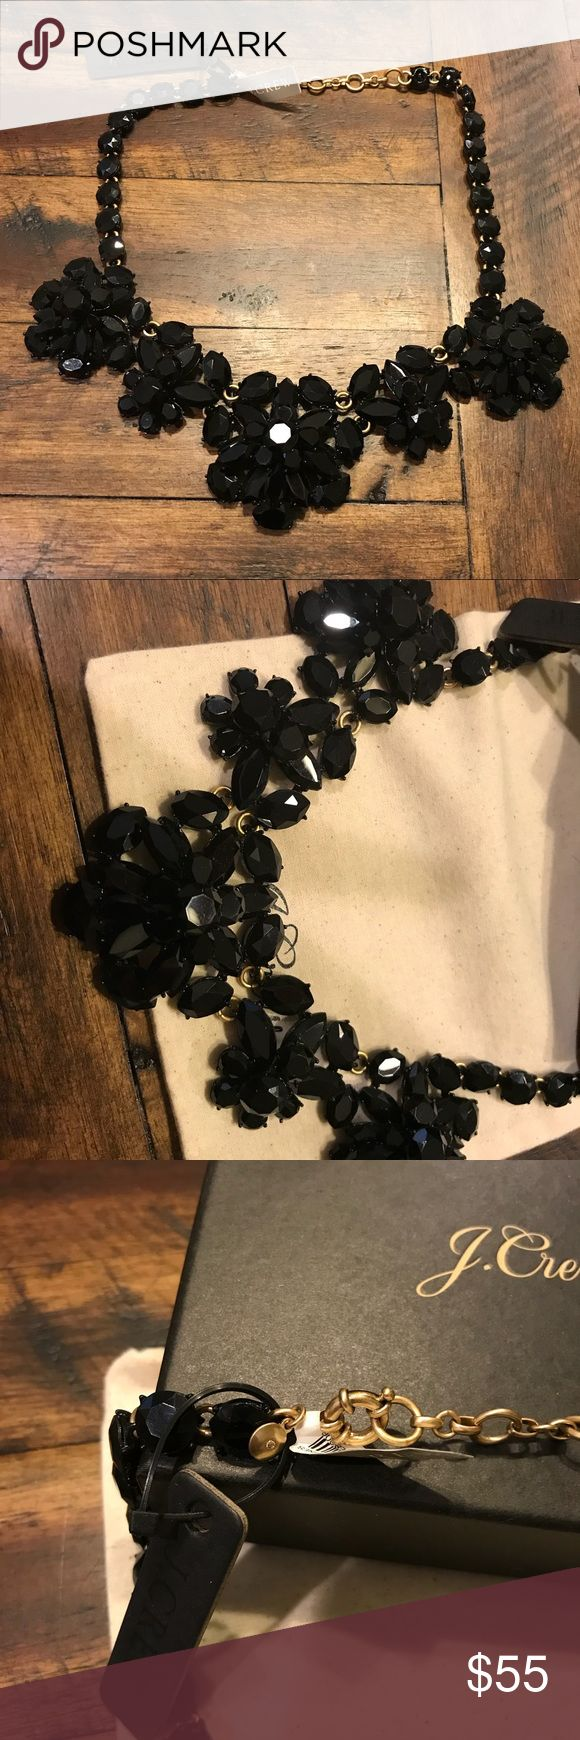 Jcrew Black Statement Necklace NWT Jcrew Statement Necklace. Beautiful black statement necklace. This necklace is perfect to wear for parties and weddings. It's even great to dress up a t-shirt! Comes with Jcrew jewelry box and dust bag. J. Crew Jewelry Necklaces